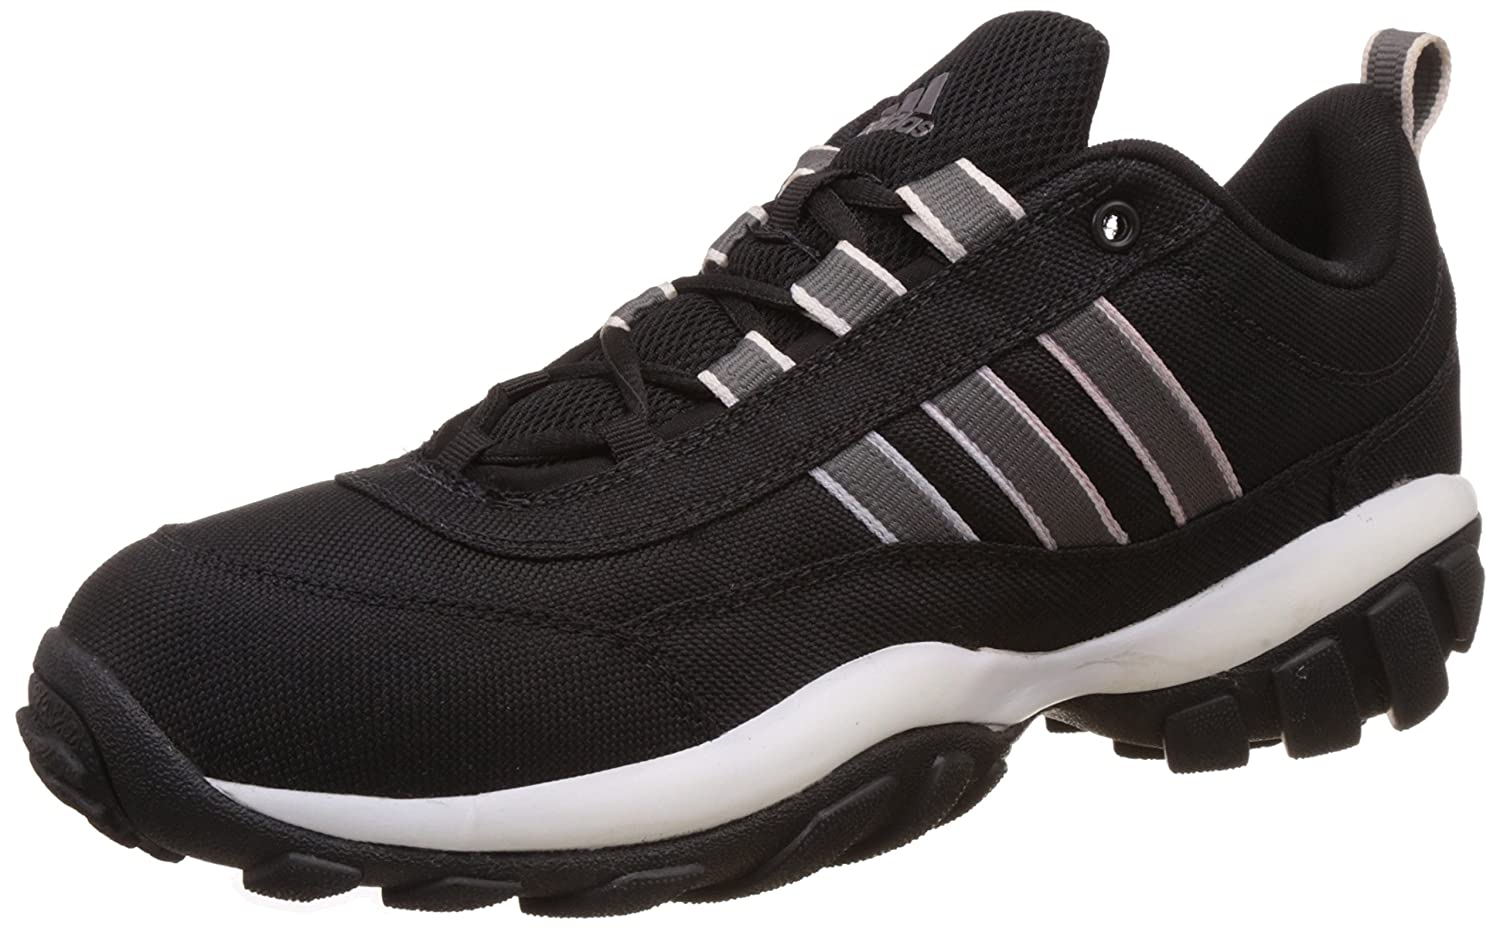 Upto 50% Off On Sports Shoe Sale By Amazon | adidas Men's Agora Multisport Training Shoes @ Rs.1,599